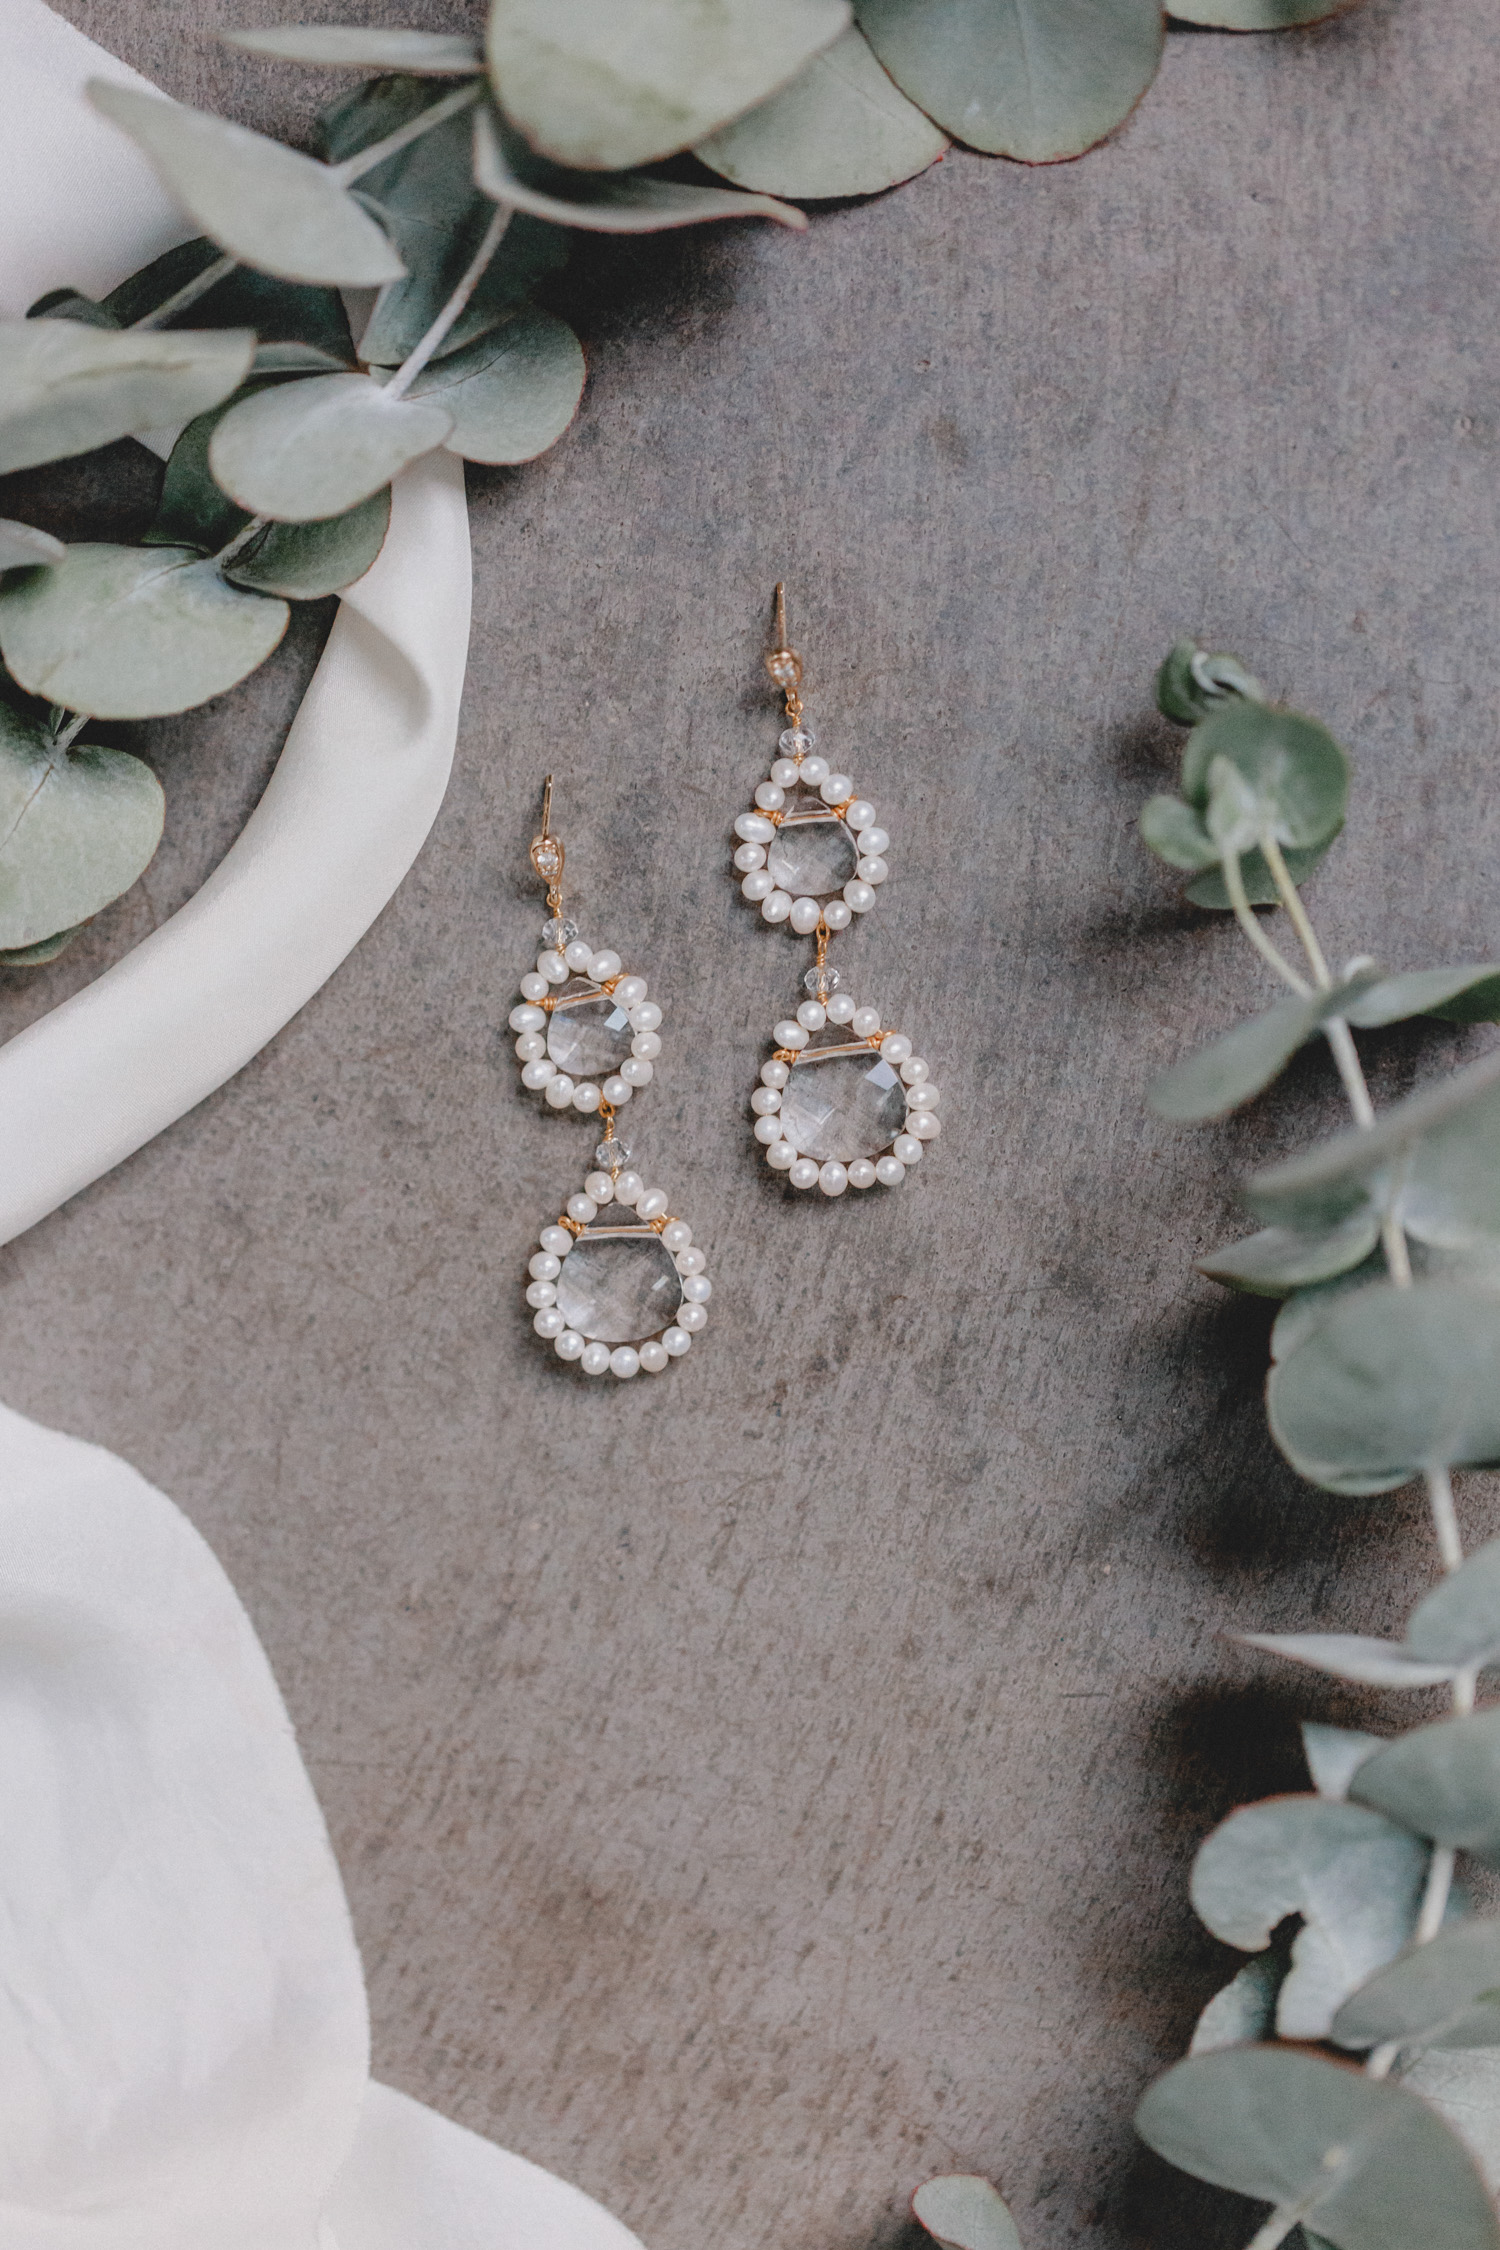 A true favourite piece of jewellery: these earrings impress with two intricately linked circles of high-quality freshwater pearls, each caressing a large, faceted Swarovski drop-shaped crystal.